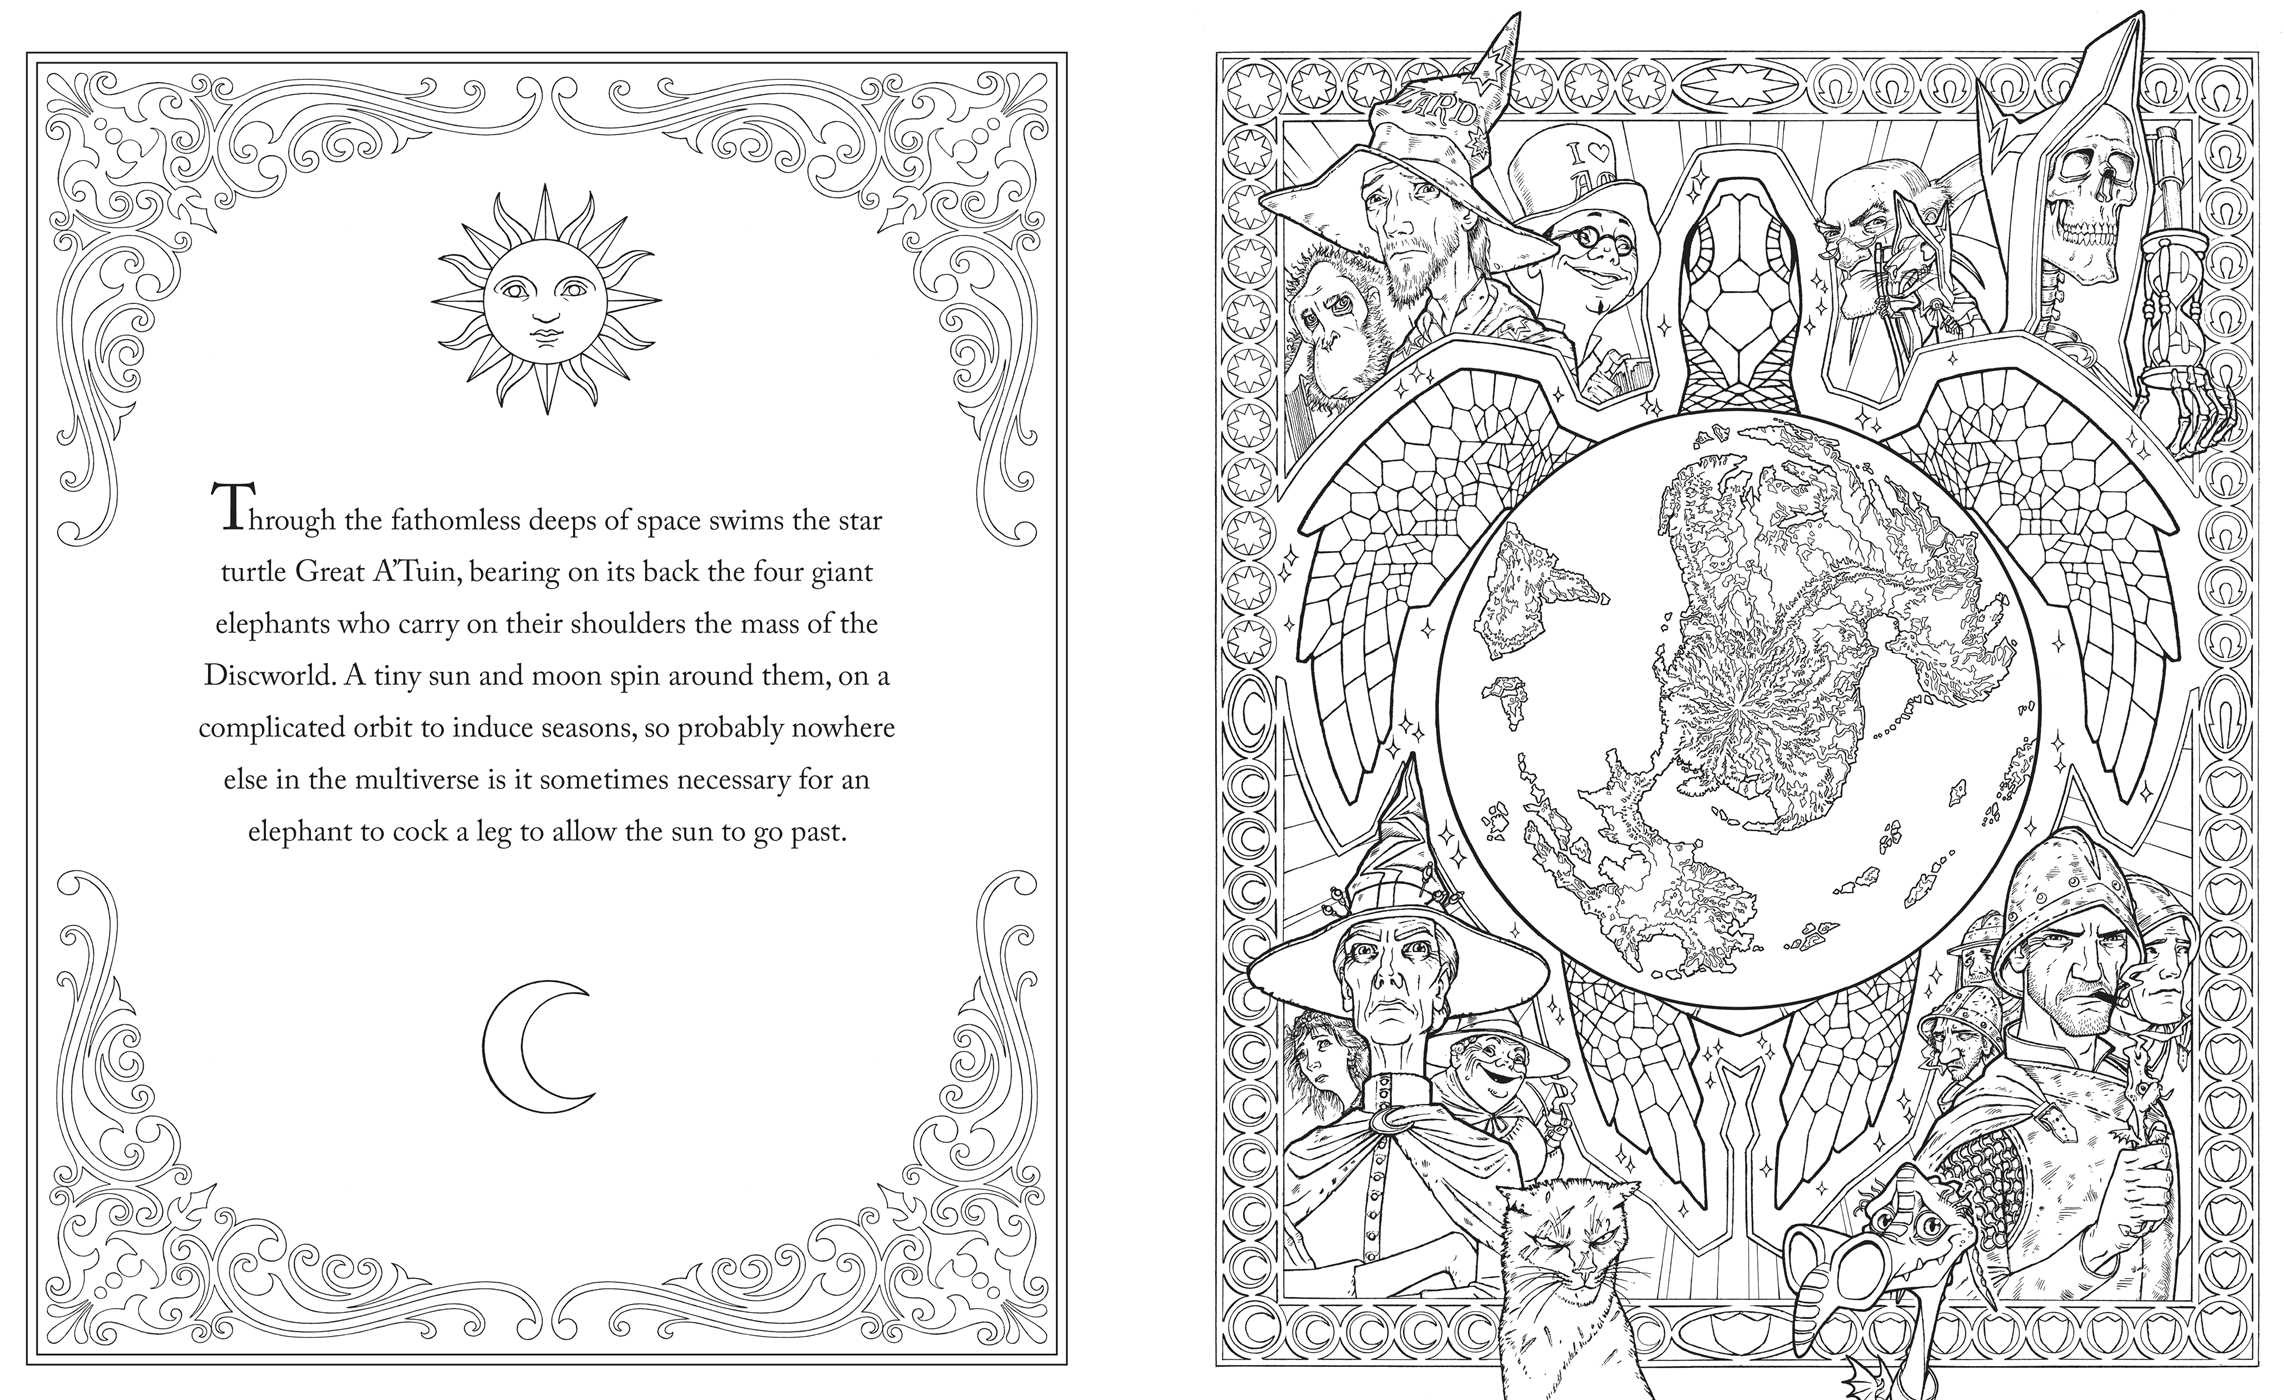 Terry pratchetts discworld coloring book 9781481498463.in01